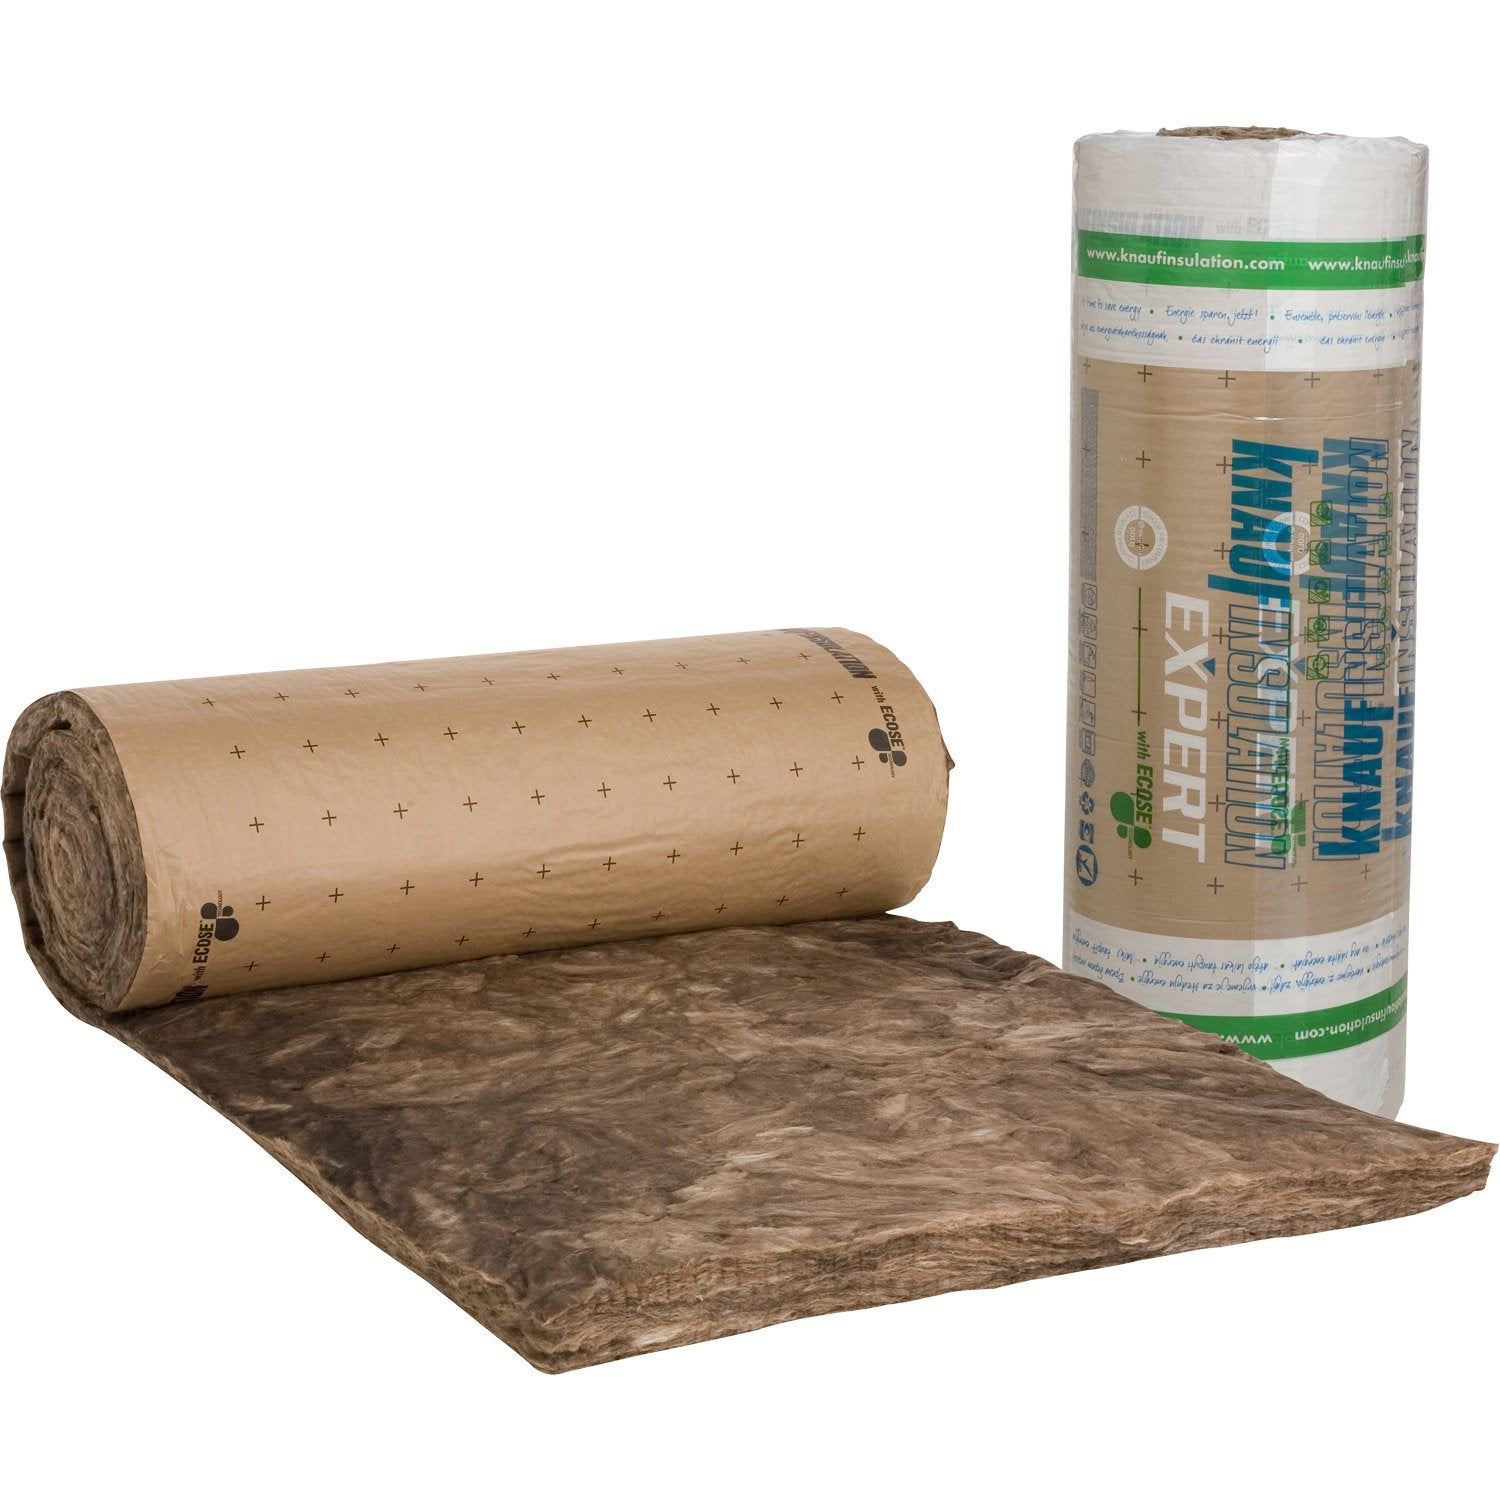 Laine de verre kraft knauf insulation 9 5 x 1 2 m ep 100 for Isolation phonique laine de roche ou laine de verre